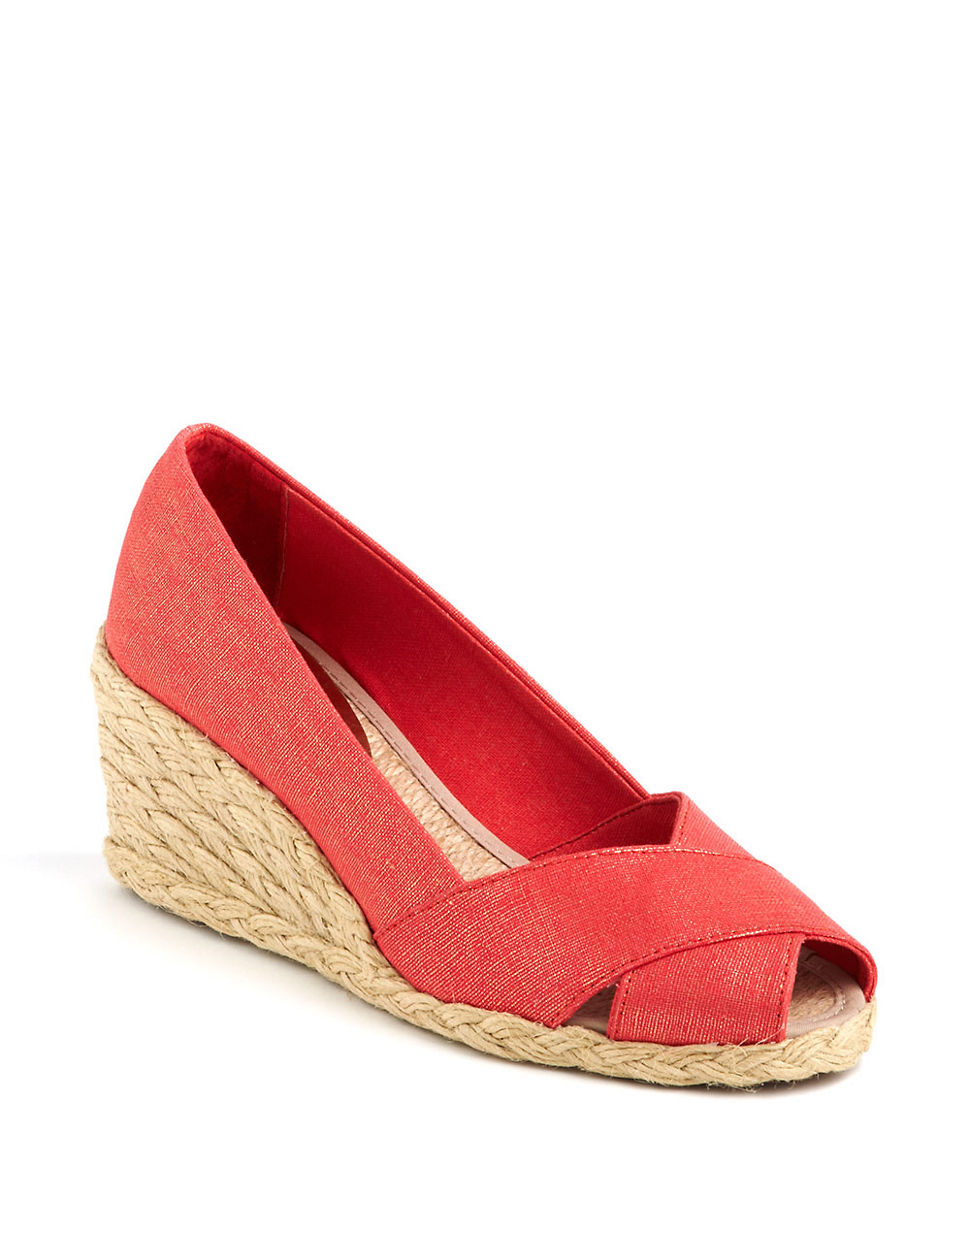 lauren by ralph lauren cecilia metallic linen wedge espadrille sandals in red lyst. Black Bedroom Furniture Sets. Home Design Ideas